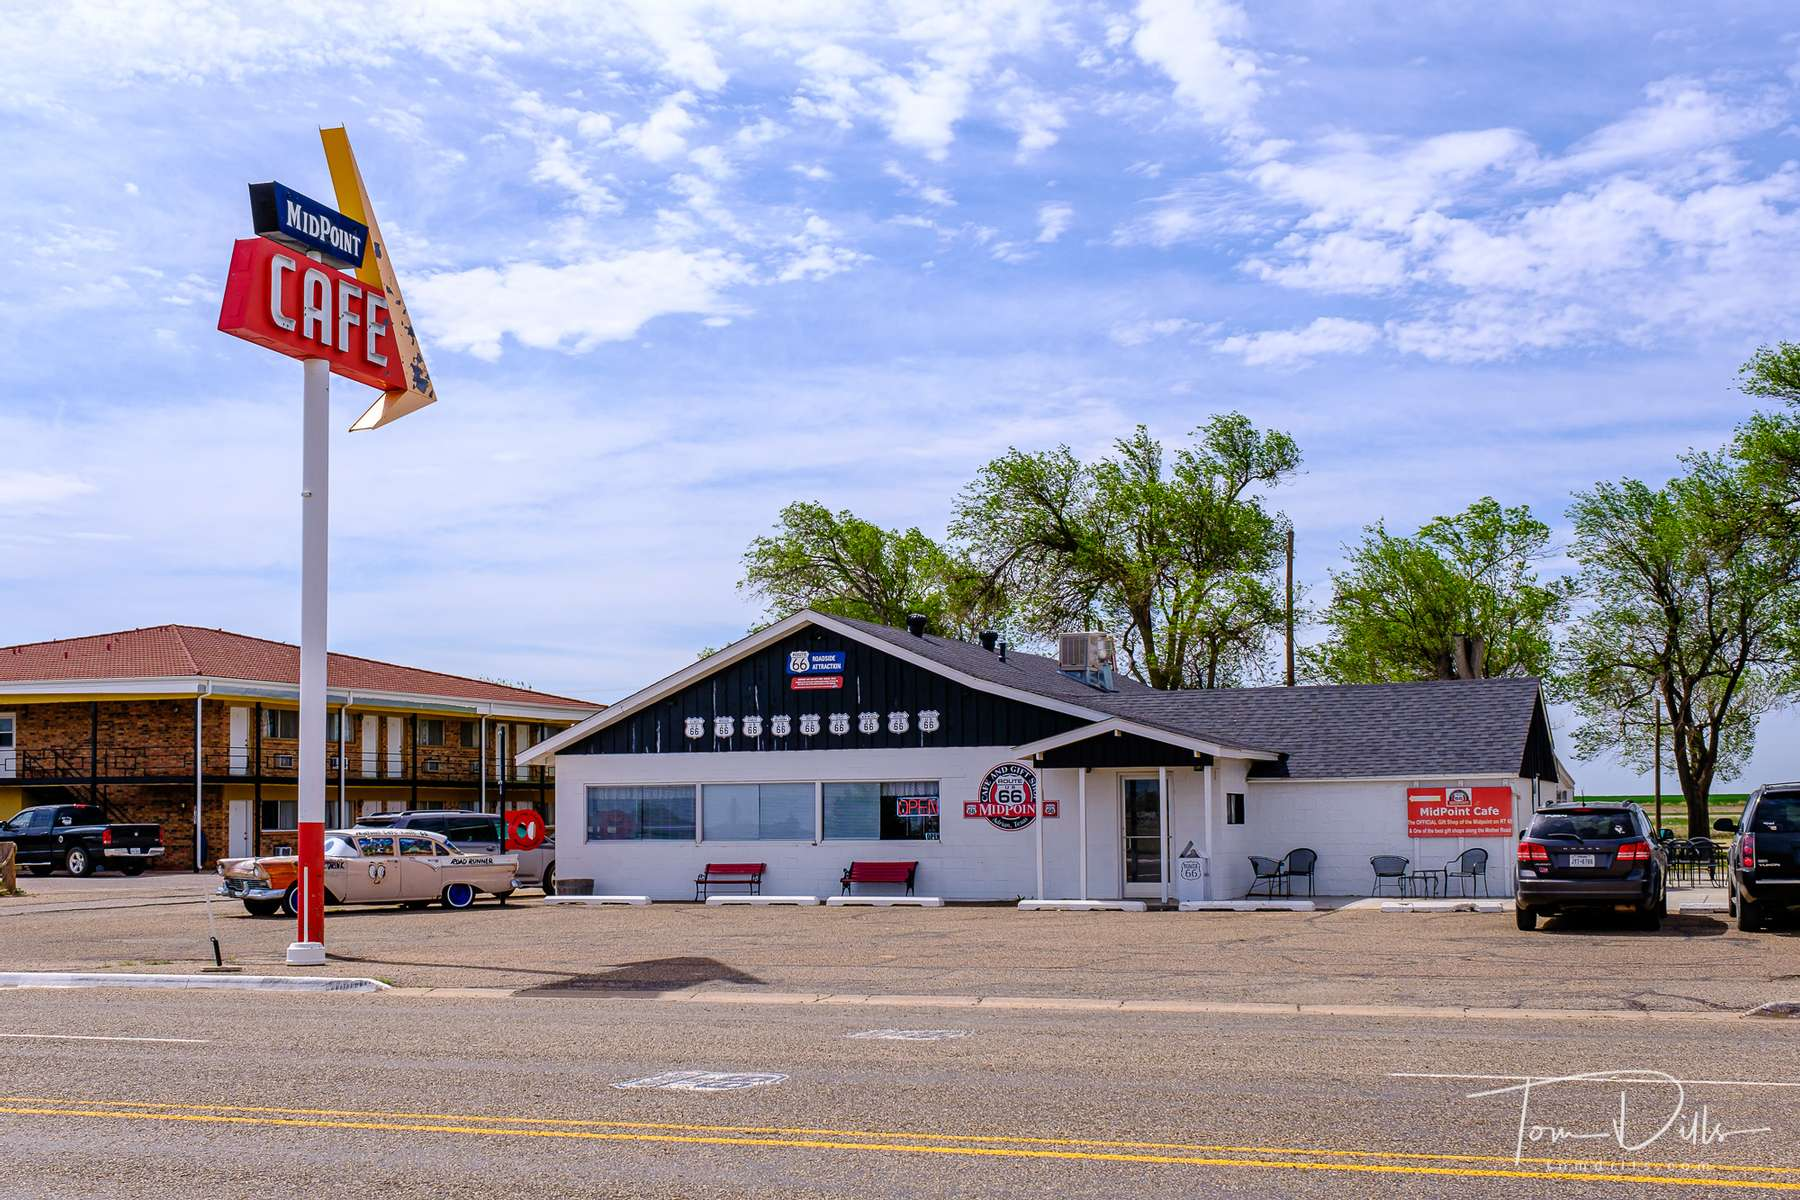 The Midpoint Cafe, halfway point on Route 66, near Adrian, Texas